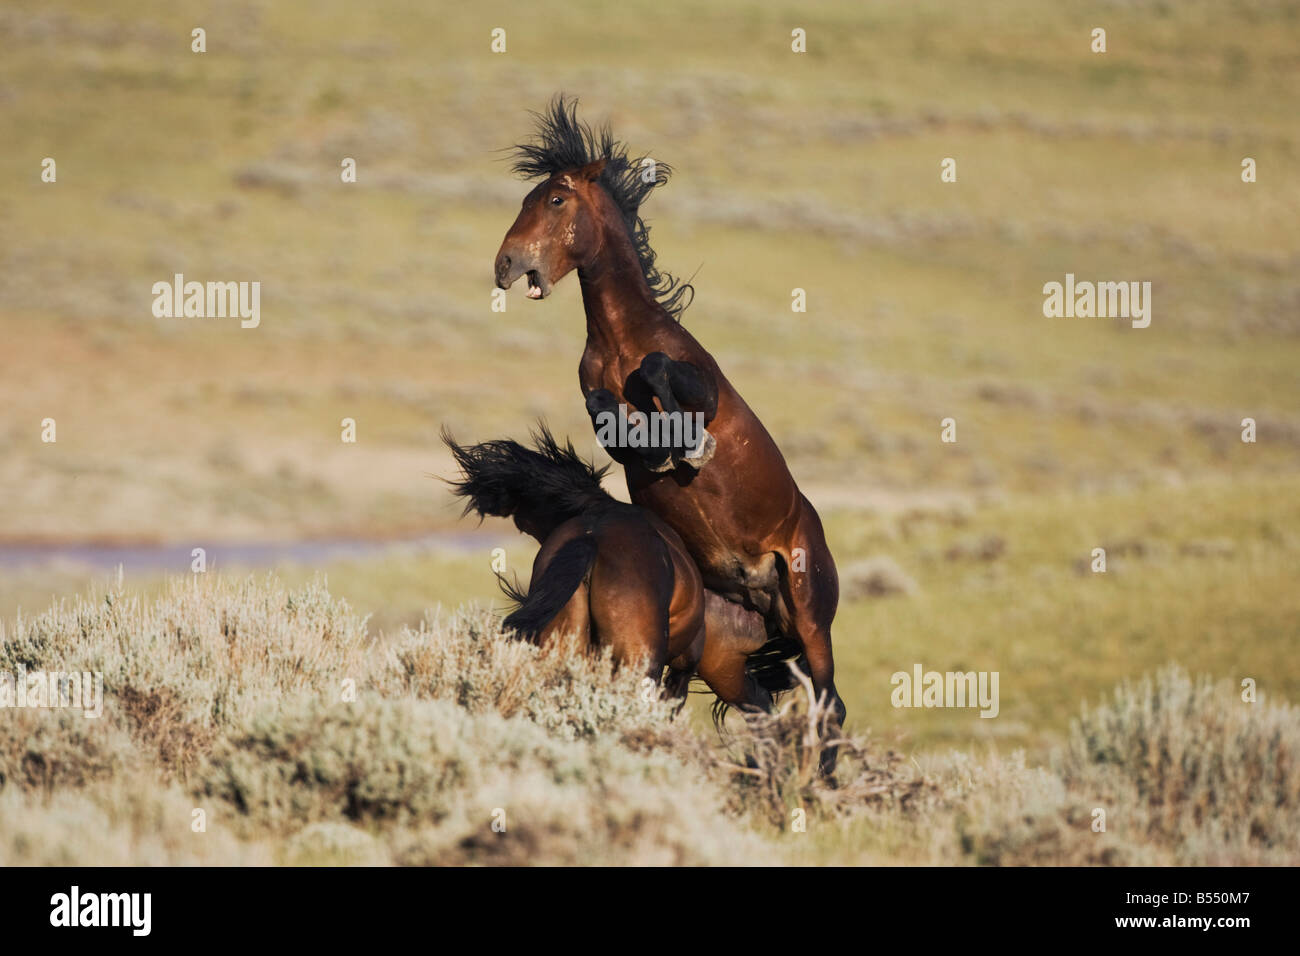 Mustang Horse Equus caballus stallions fighting Pryor Mountain Wild Horse Range Montana USA Stock Photo